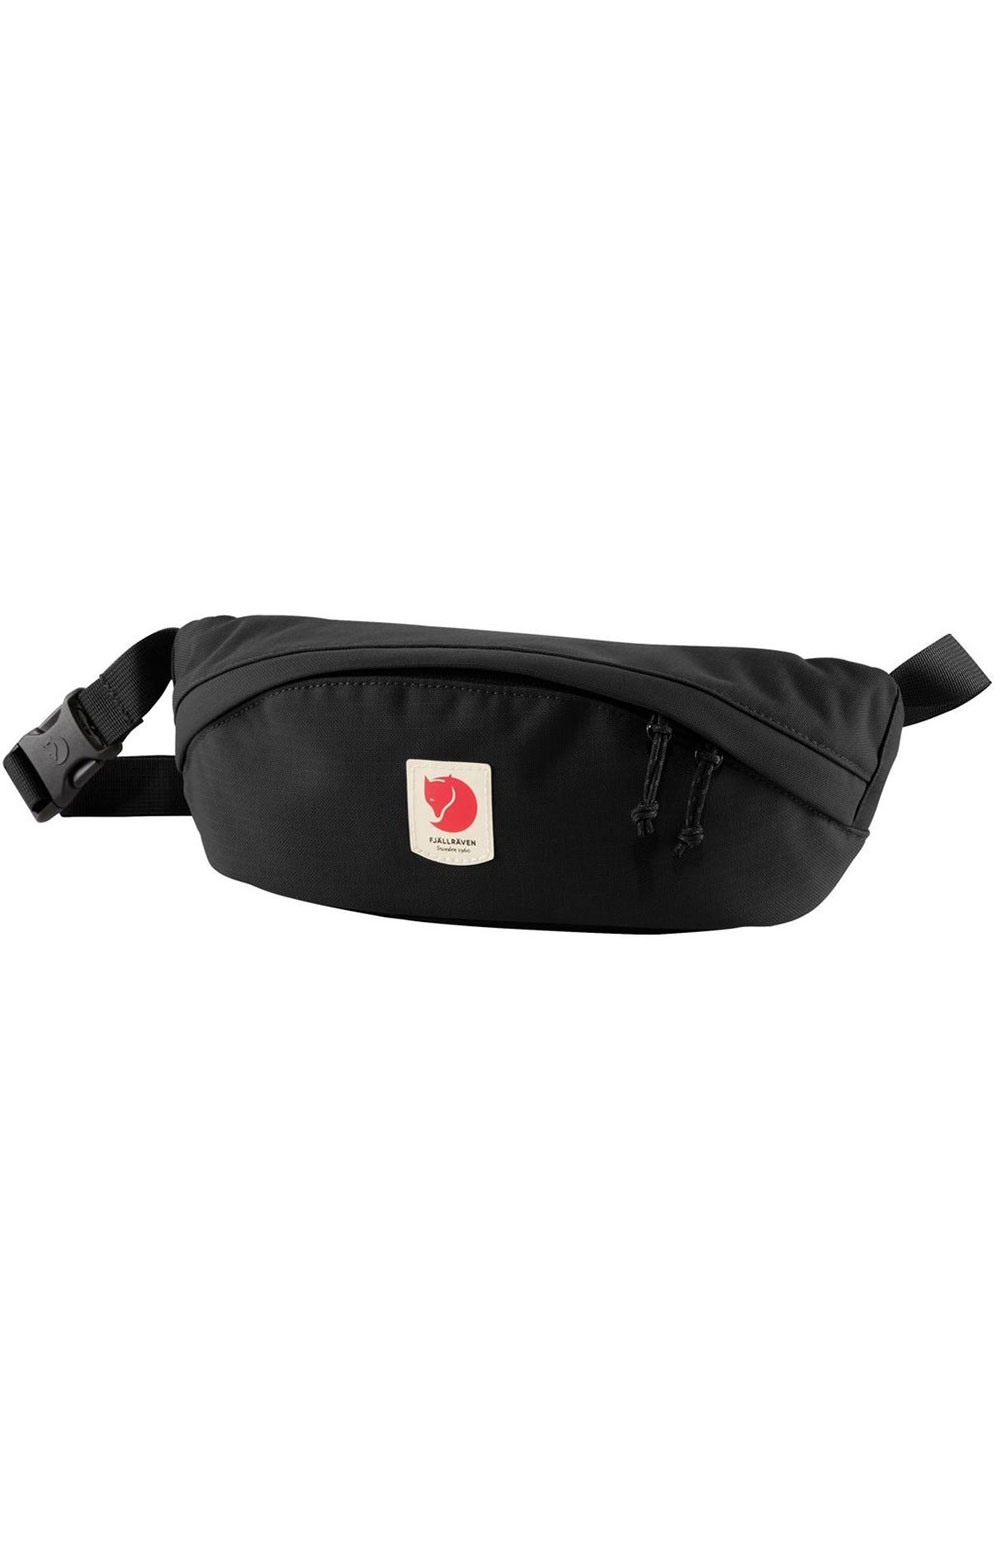 Ulvo Hip Pack Medium - Black